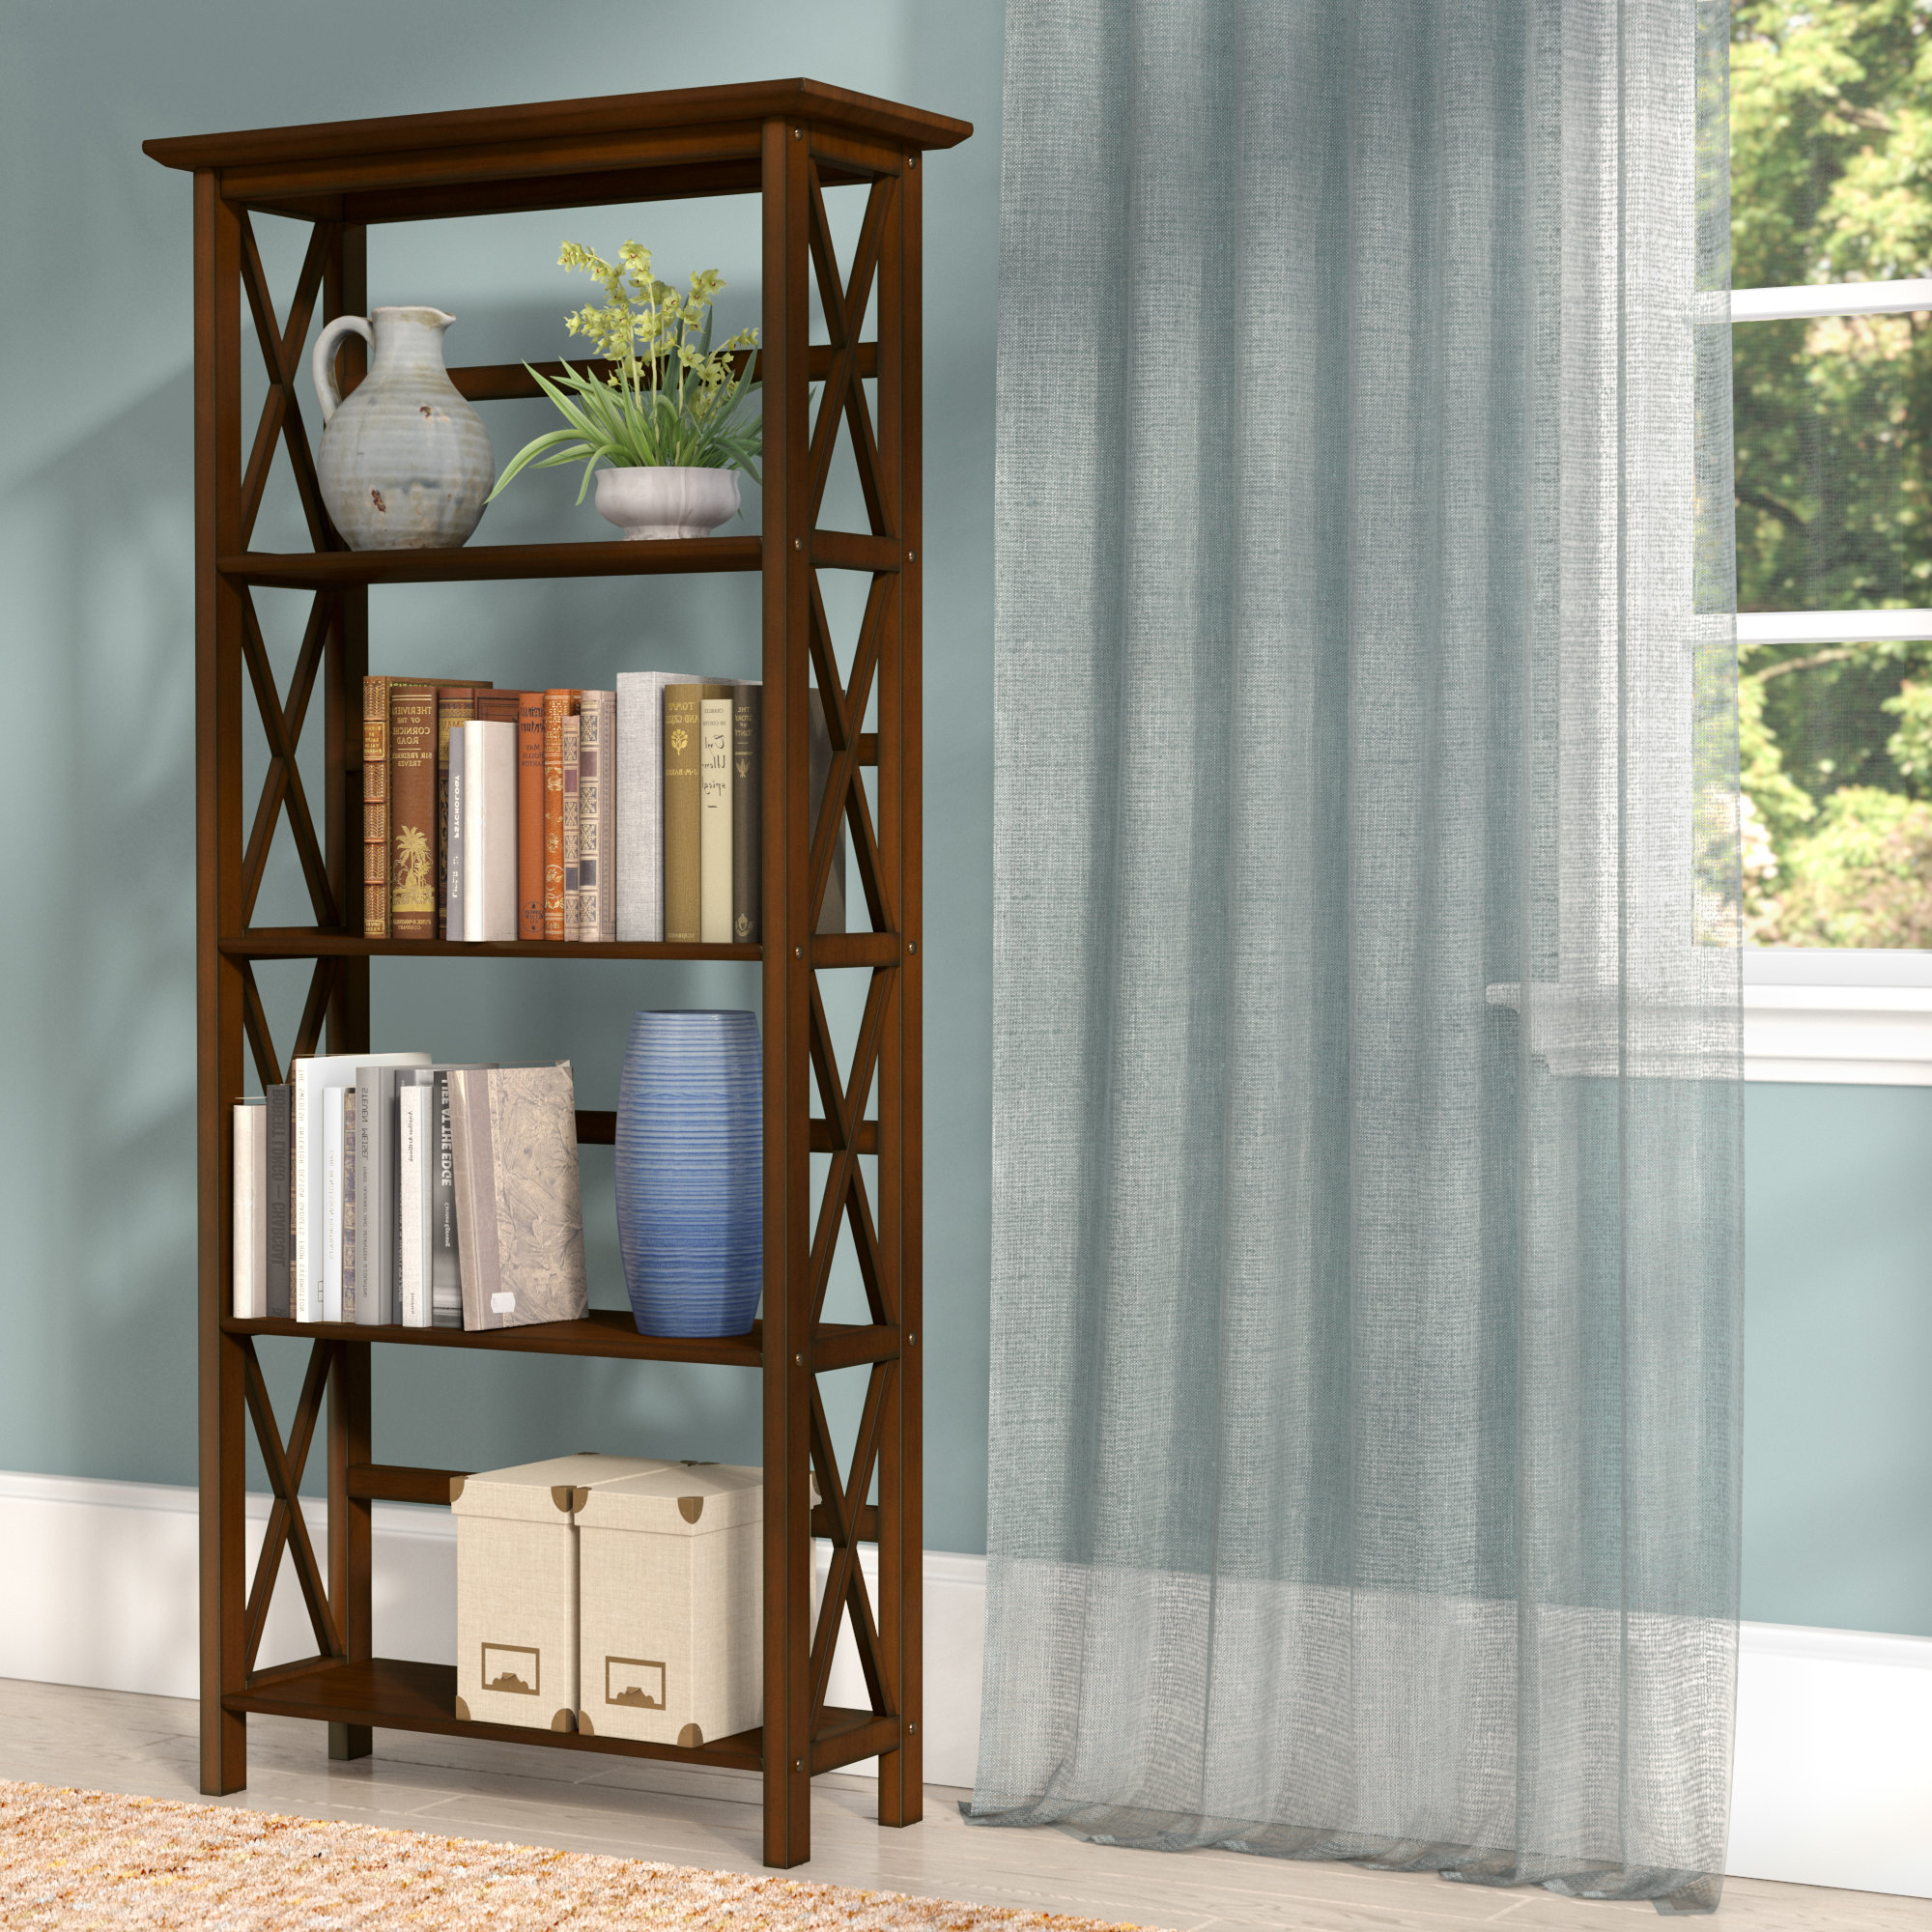 Gracelynn 5 Tier Etagere Bookcases Intended For Most Recent Hitz Etagere Bookcase (View 16 of 20)